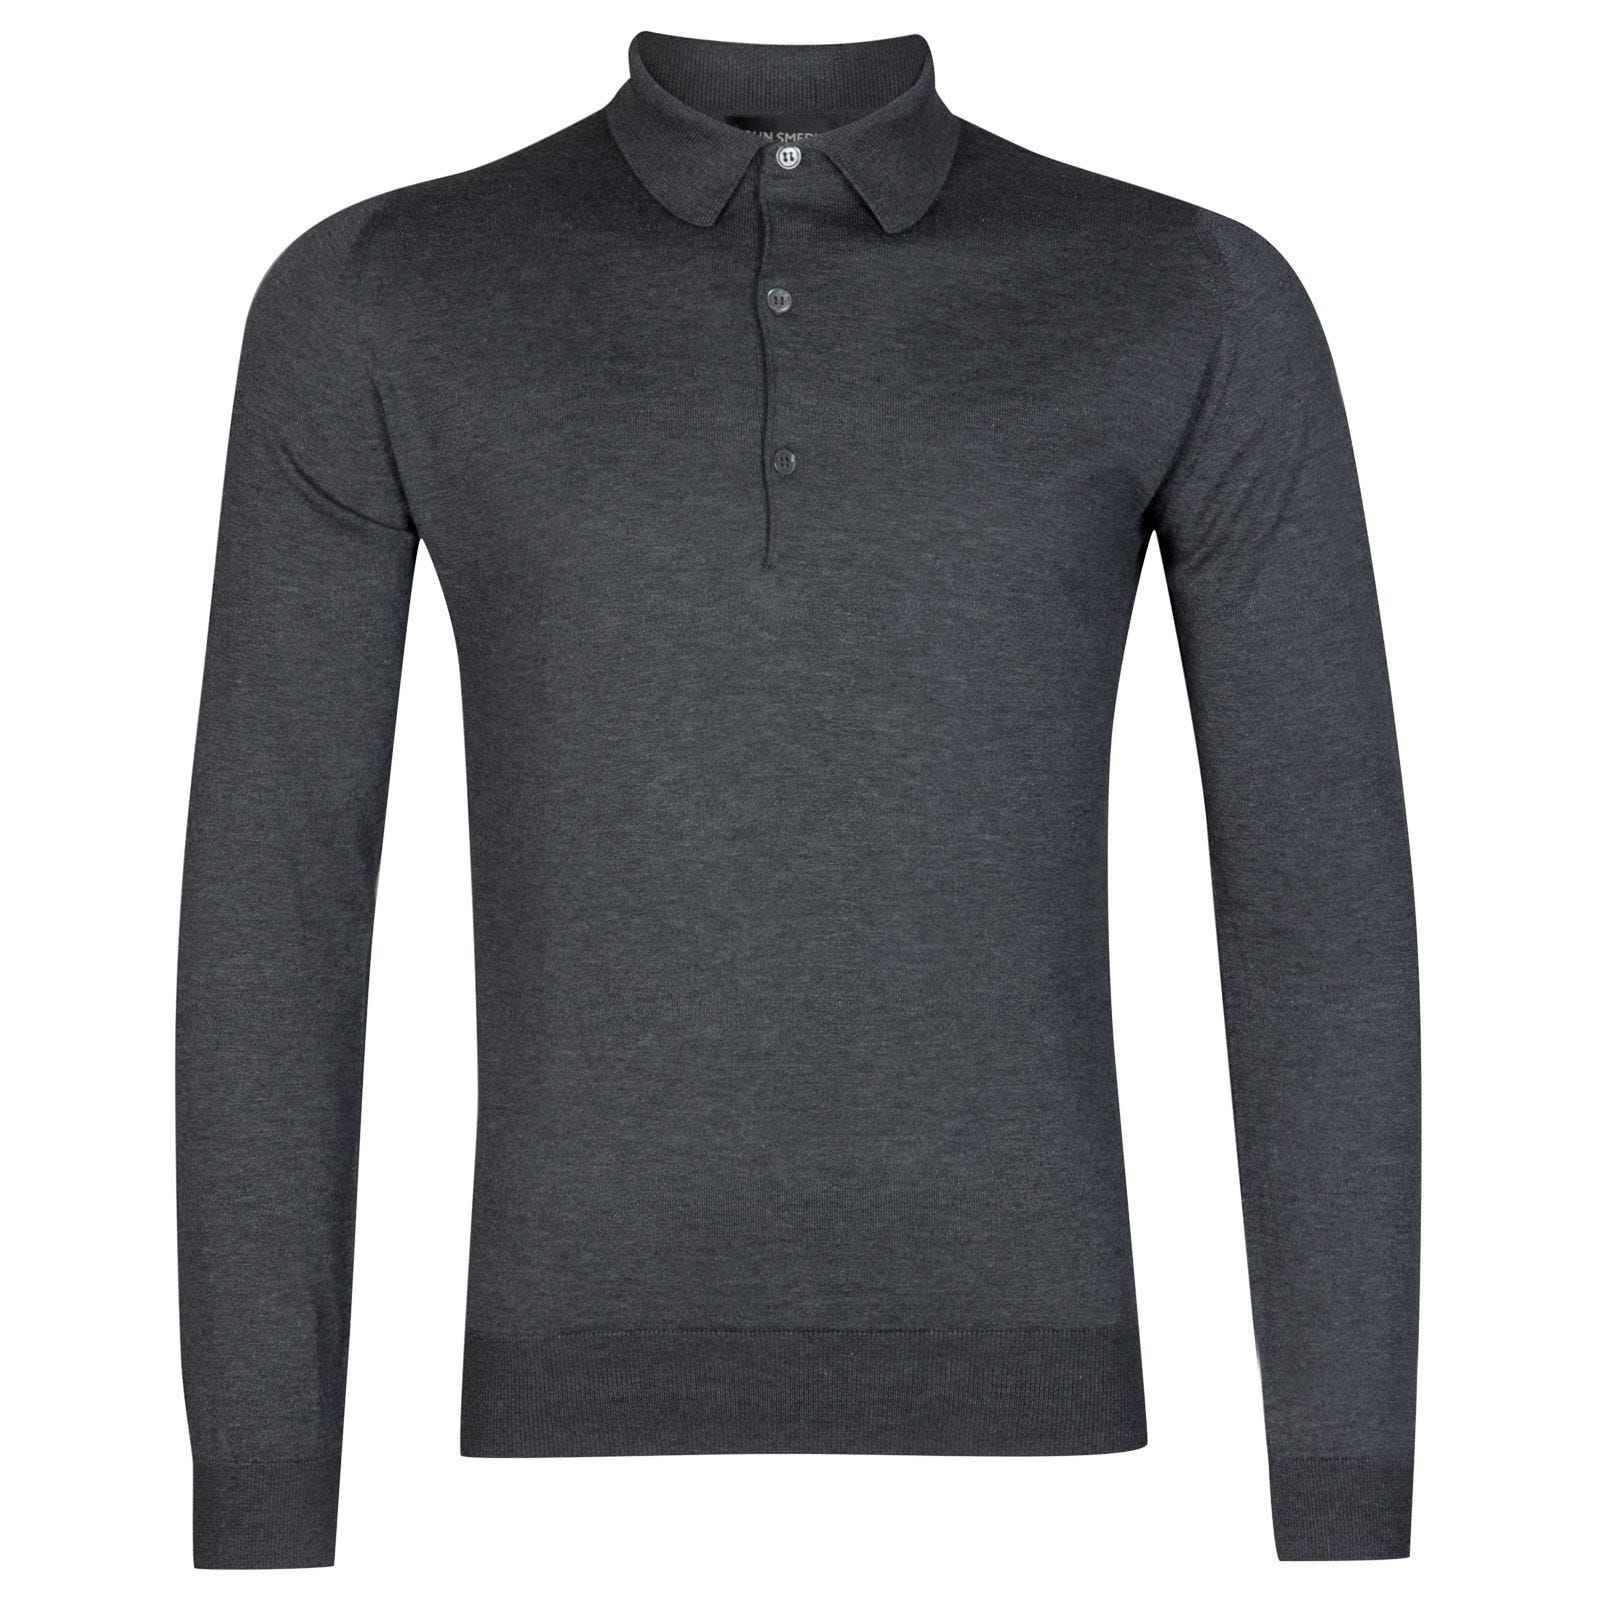 John Smedley bradwell Sea Island Cotton Shirt in Charcoal-M